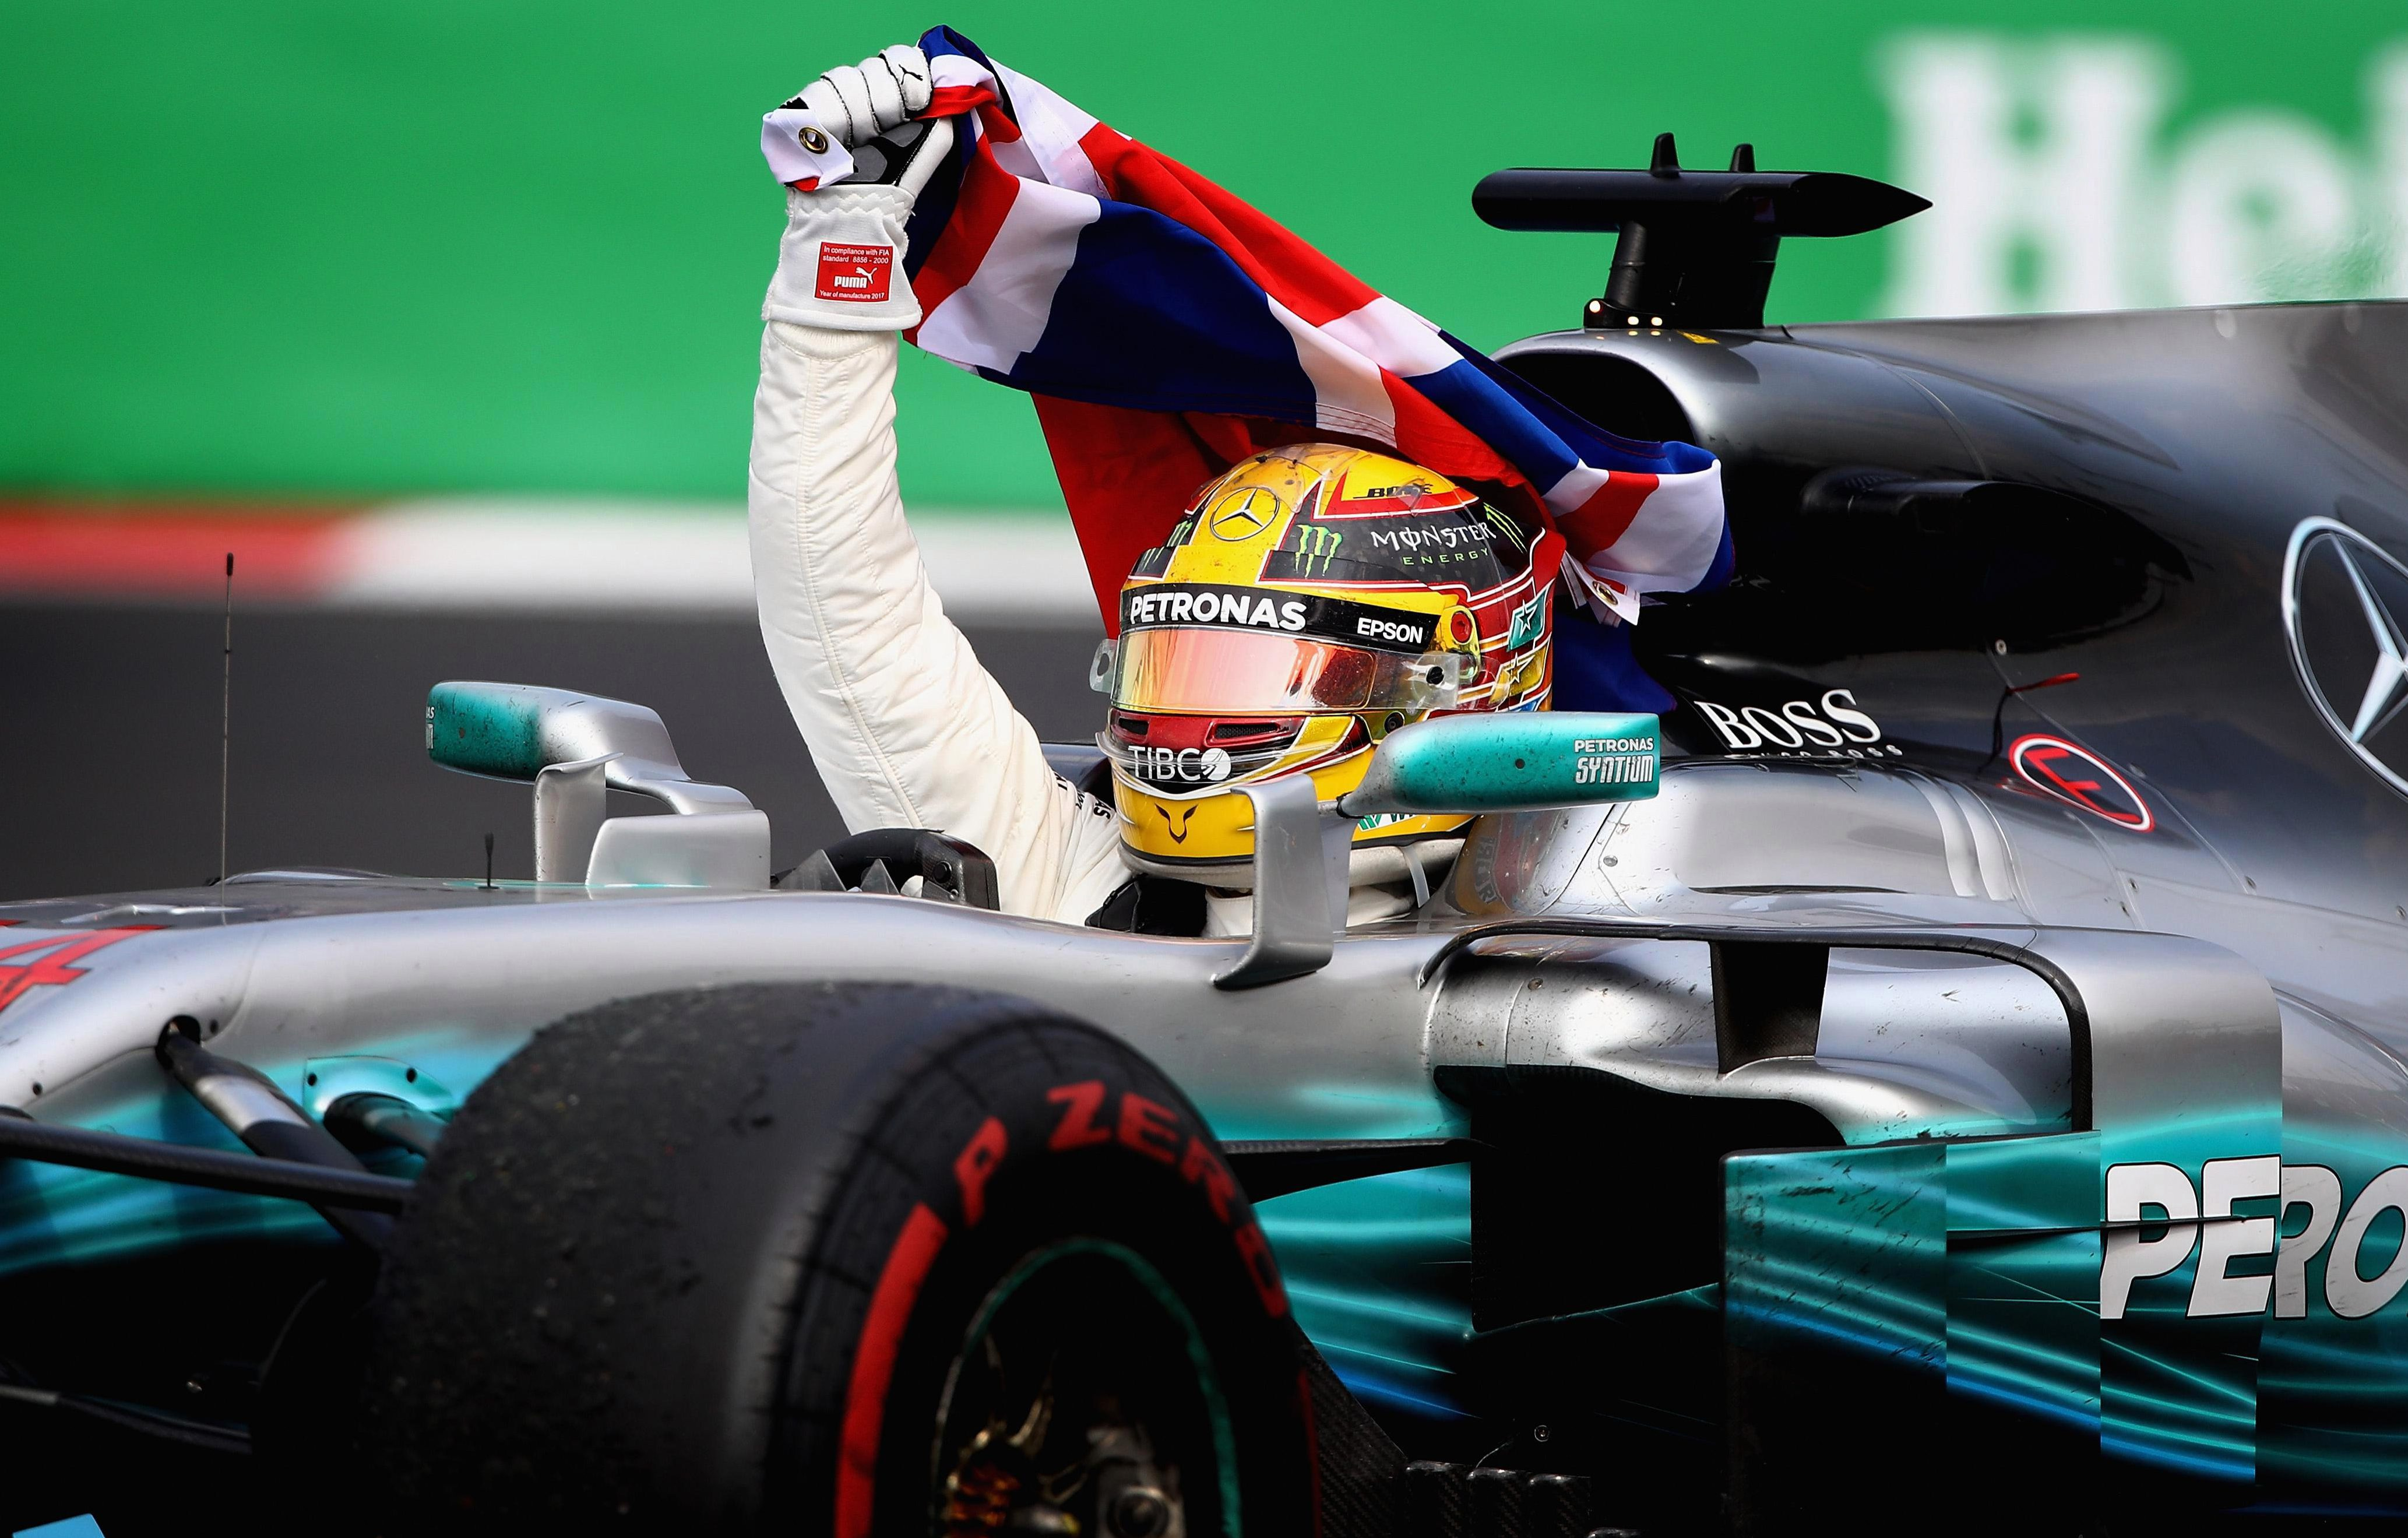 Lewis Hamilton's hopes looked dashed on the first lap but he recovered well